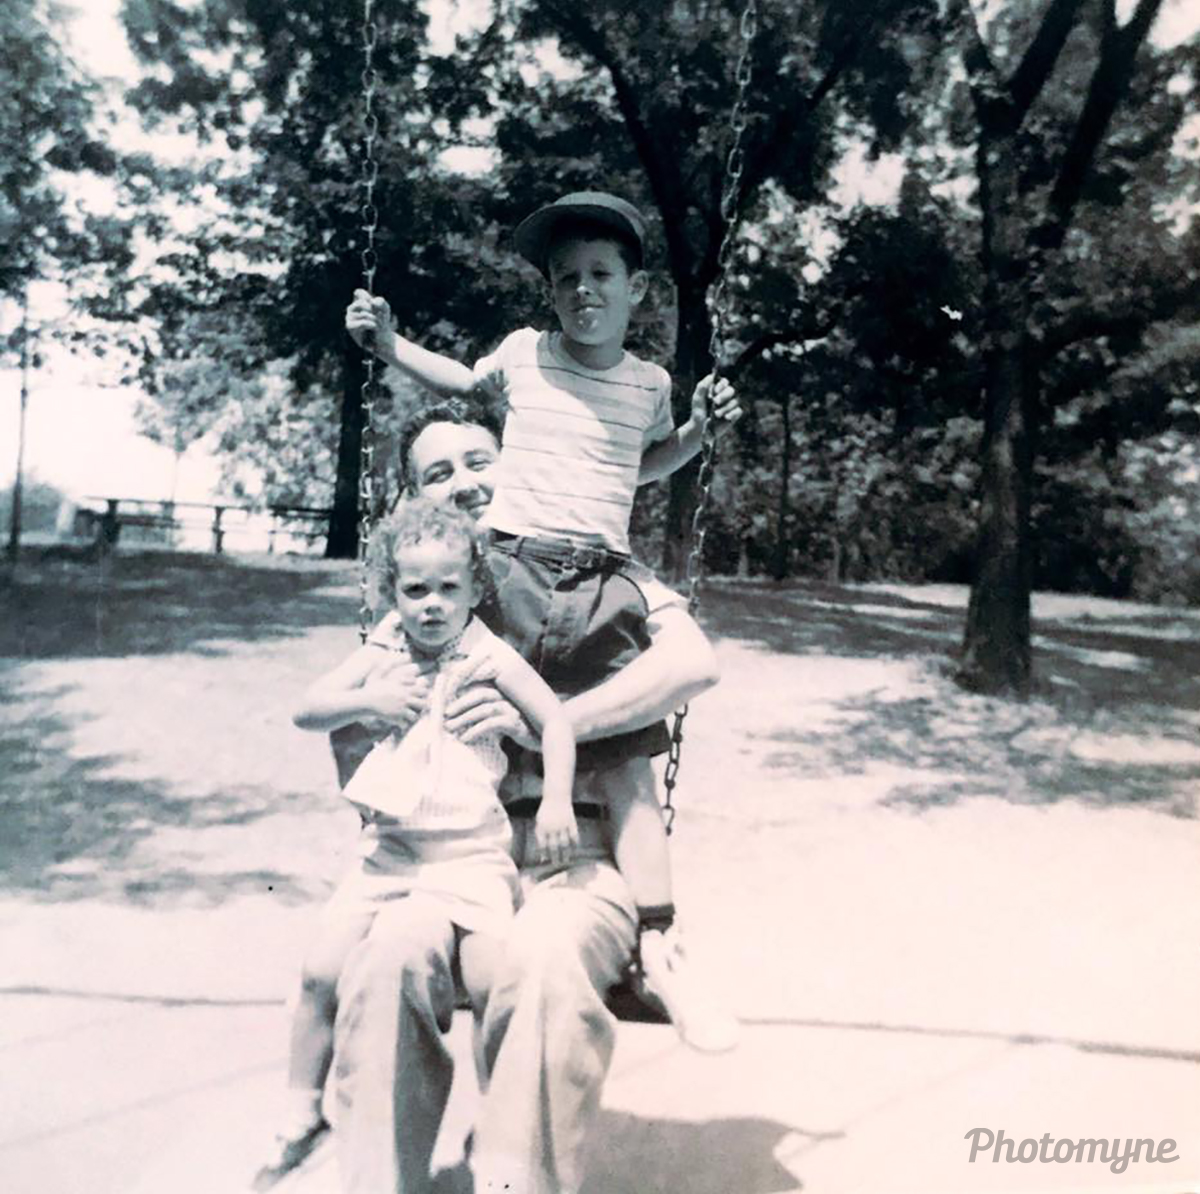 Here is my dad with my oldest brother and myself on one of our many picnics. He loved taking us on picnics and so did we! USA 1959